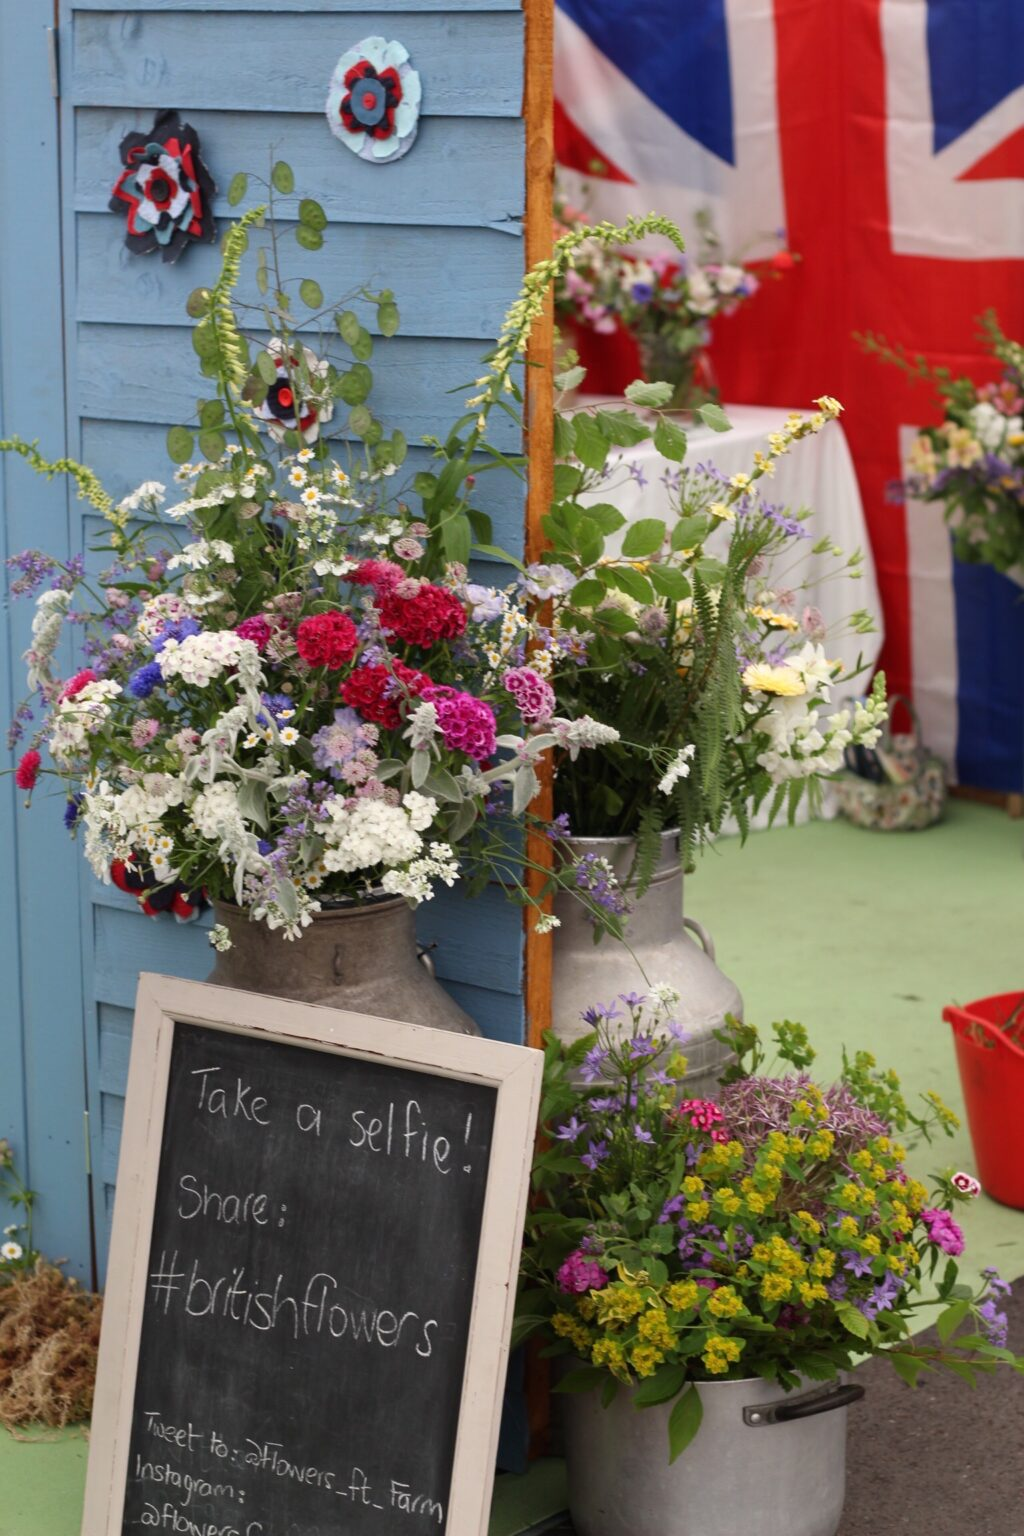 A display of British flowers in milk churns and zinc containers surround the selfie station at BBC Gardeners World Live. Made by the West Midlands members of Flowers from the Farm, the stand features a blue painted shed wall adorned with fabric flowers, and a large union jack hangs in the background.